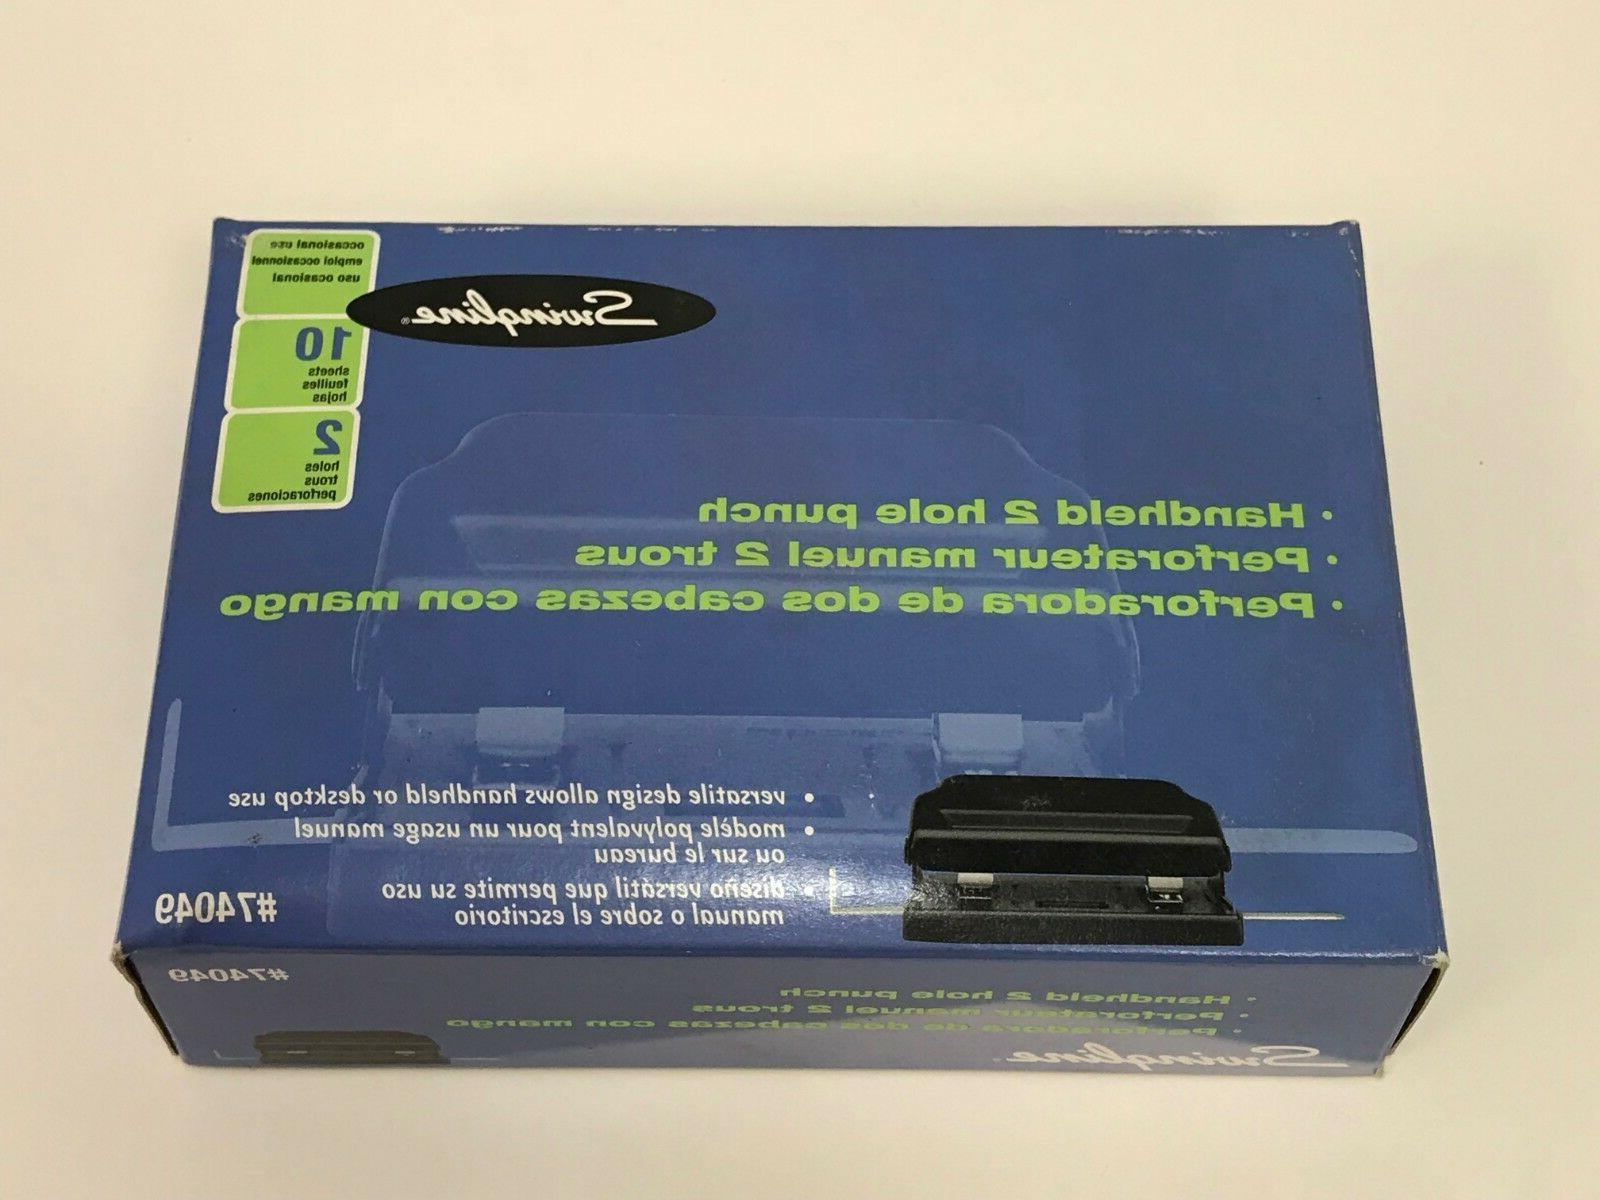 Swingline 2 Hole Punch, Handheld Two 10 Sheet NEW